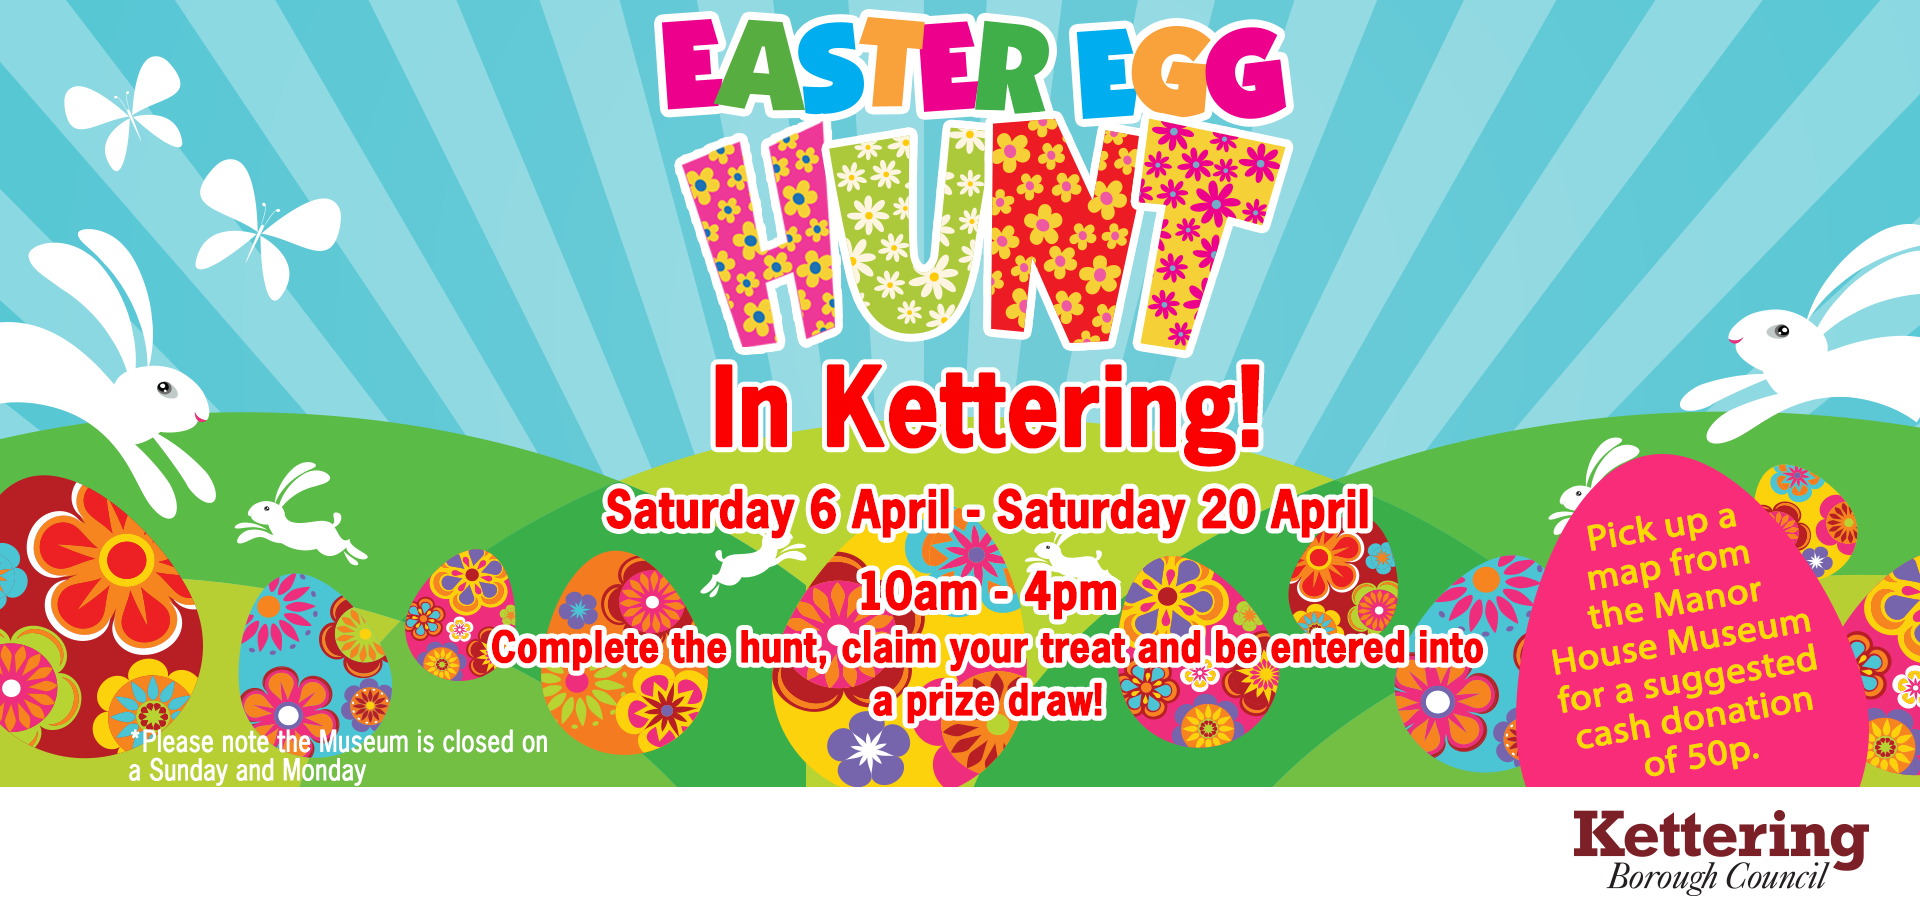 Easter Egg Hunt in Kettering Town - This Is Kettering - The official visitor website for Kettering